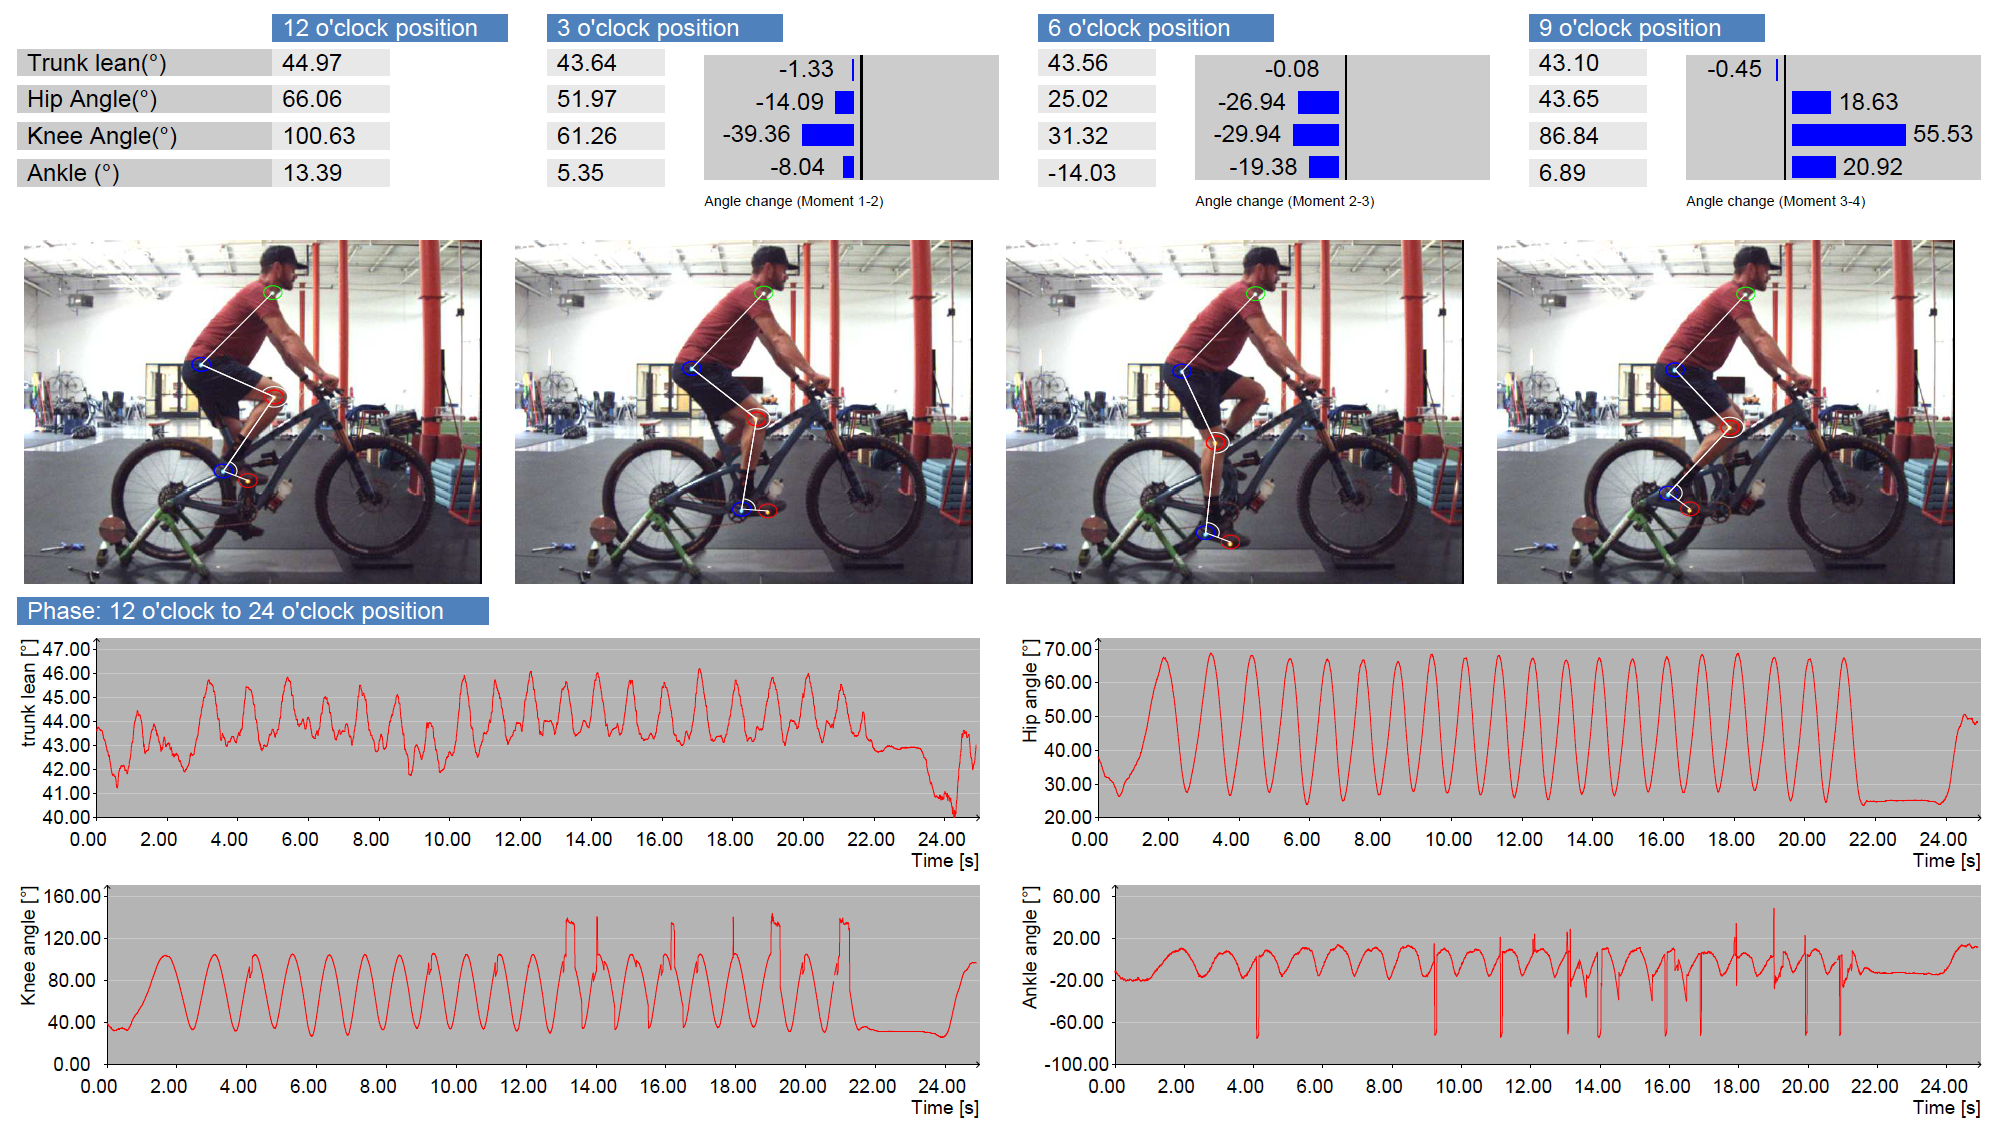 """These squiggly lines show that there is is of course some variance in my knee flexion angles, even on the trainer. You should expect much higher variance while riding on the trail. This is why setting up your suspense to keep your knee in the """"safe"""" zone of 30-35 degrees of flexion at the bottom of the pedal stroke is so important."""